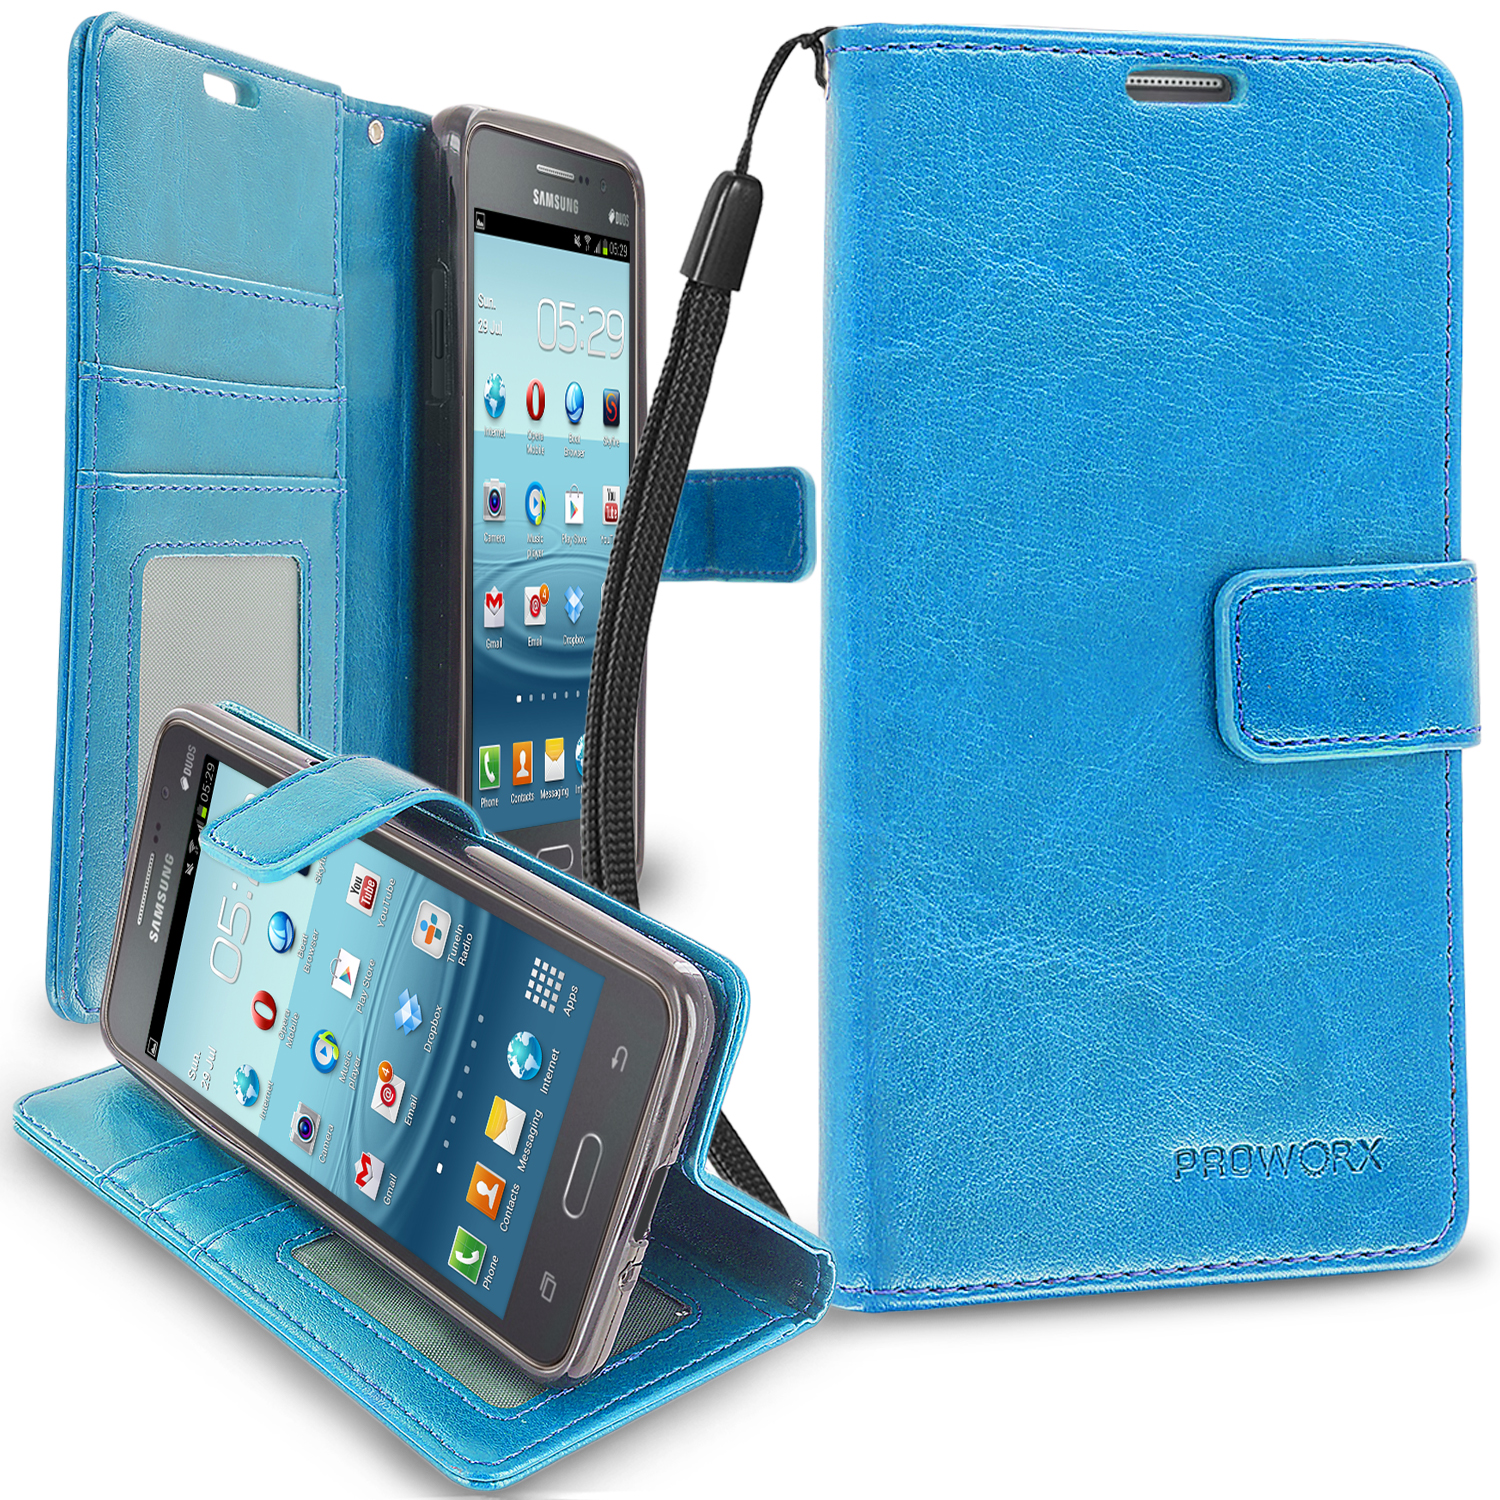 Samsung Galaxy Grand Prime LTE G530 Baby Blue ProWorx Wallet Case Luxury PU Leather Case Cover With Card Slots & Stand